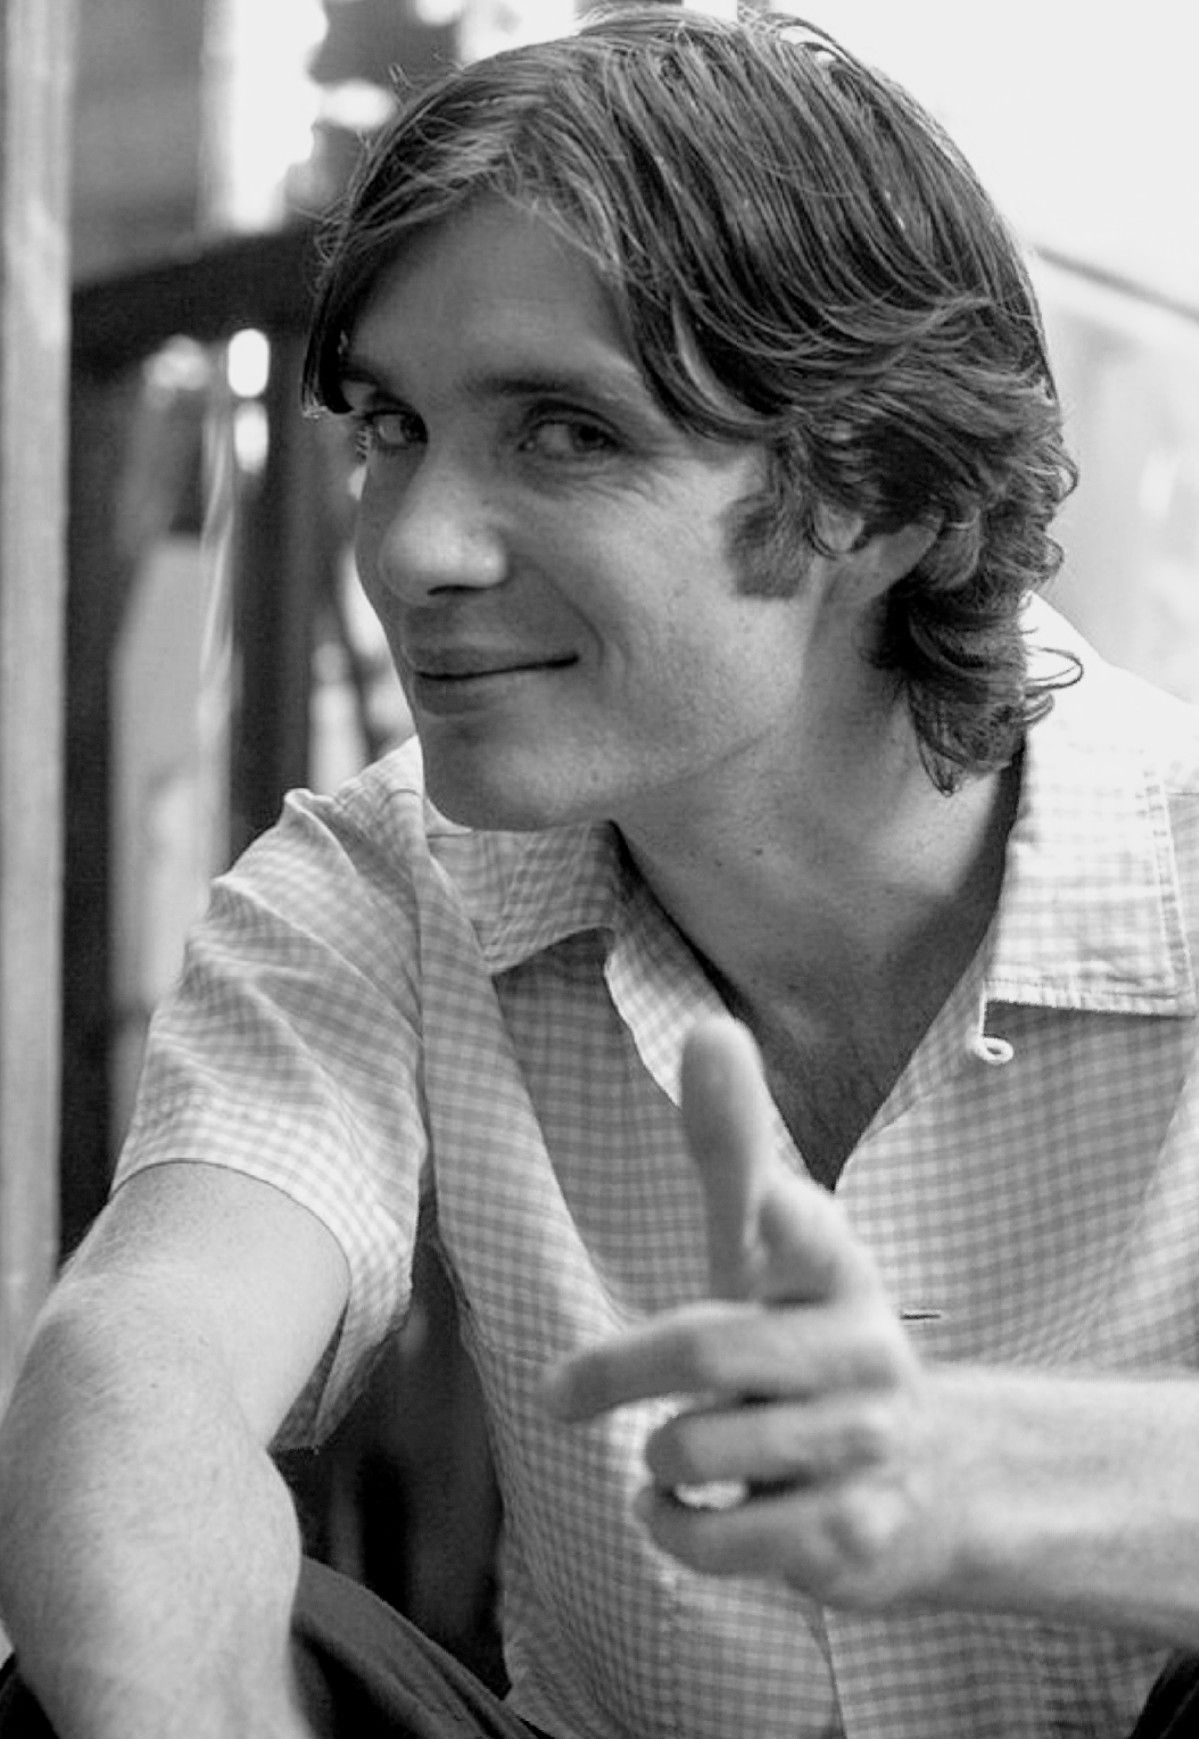 Cillian murphy as neil in watching the detectives